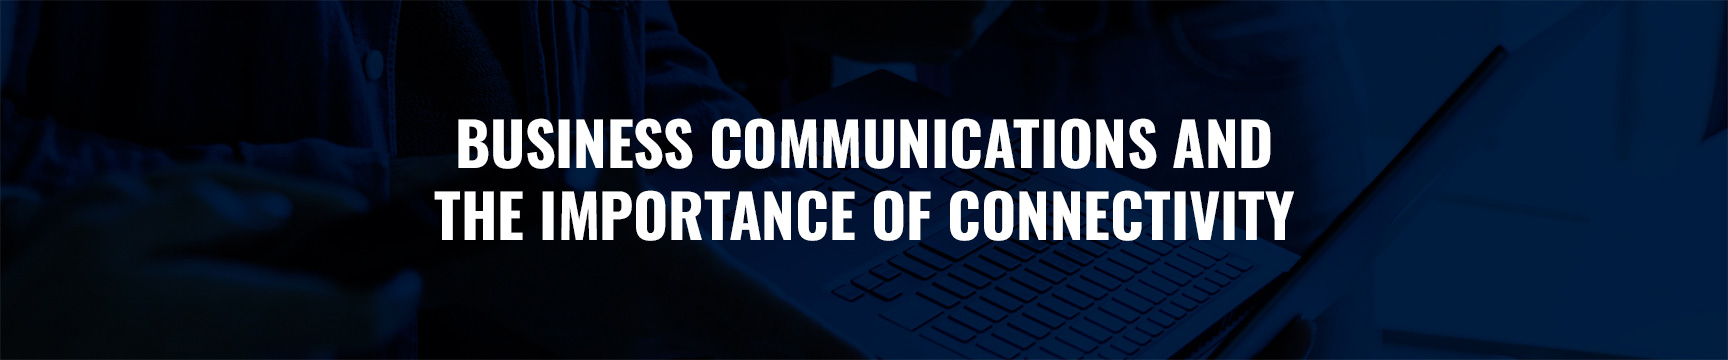 Business communications and the importance of connectivity